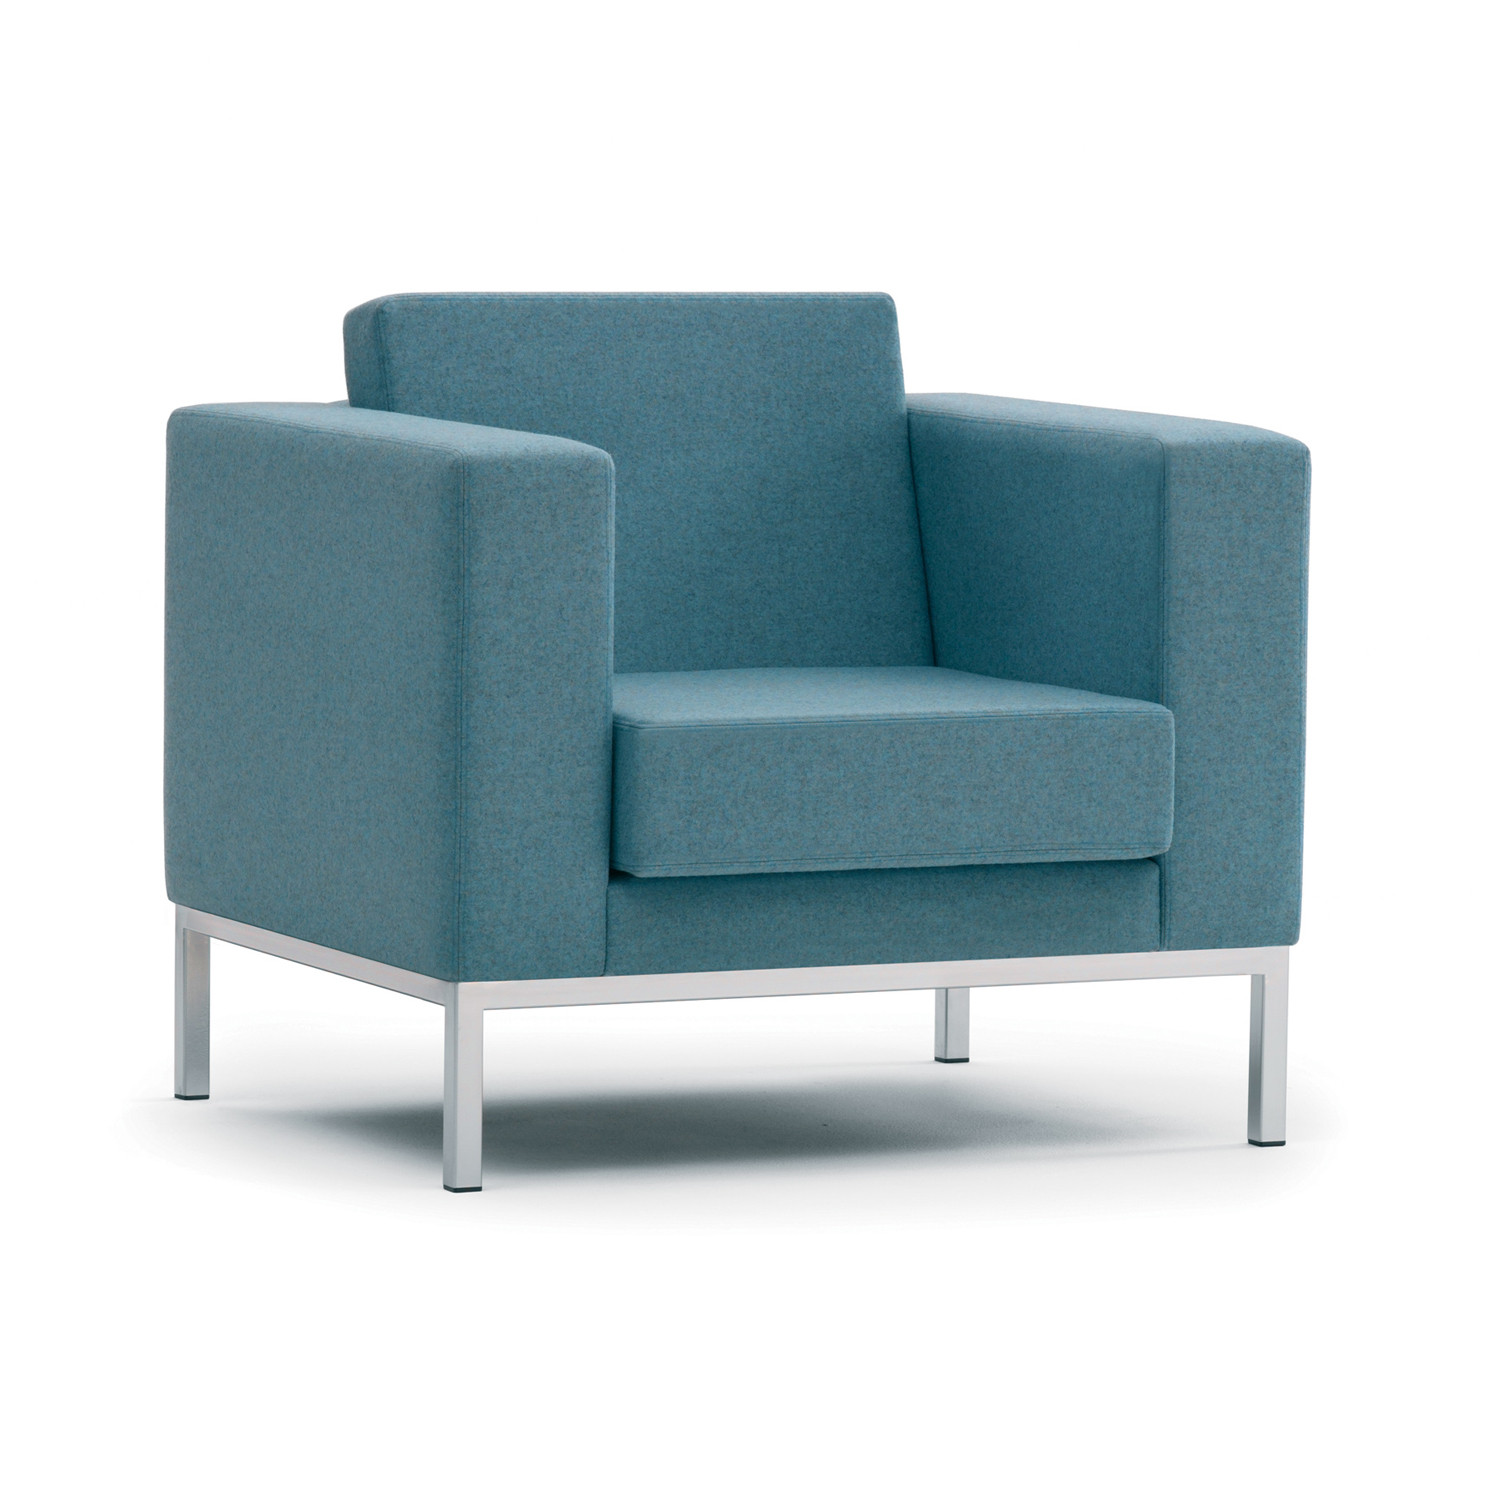 Total Reception Sofa Chair